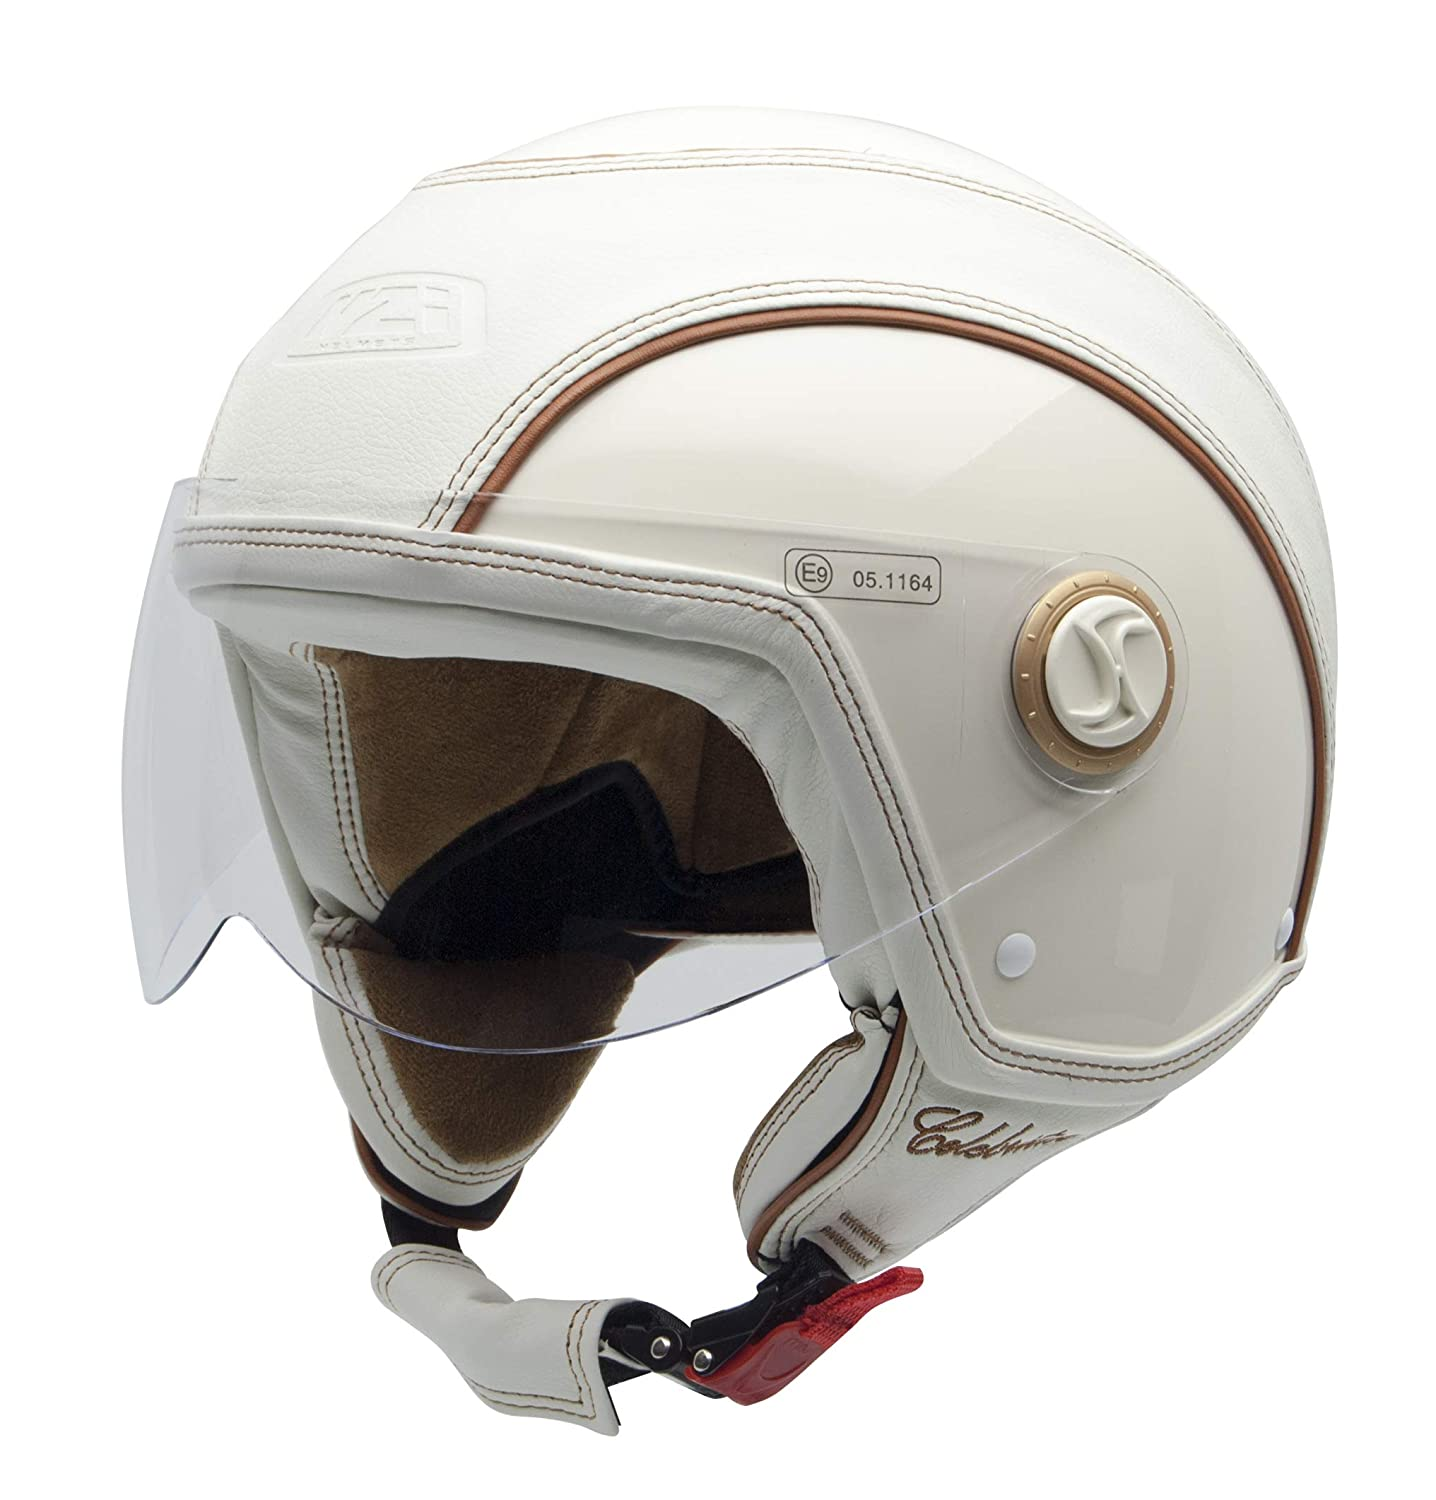 NZI 150213G300 Celebrities Casco de Moto, Color Blanco, Talla 58 (L) NZI Technical Protection S.L.